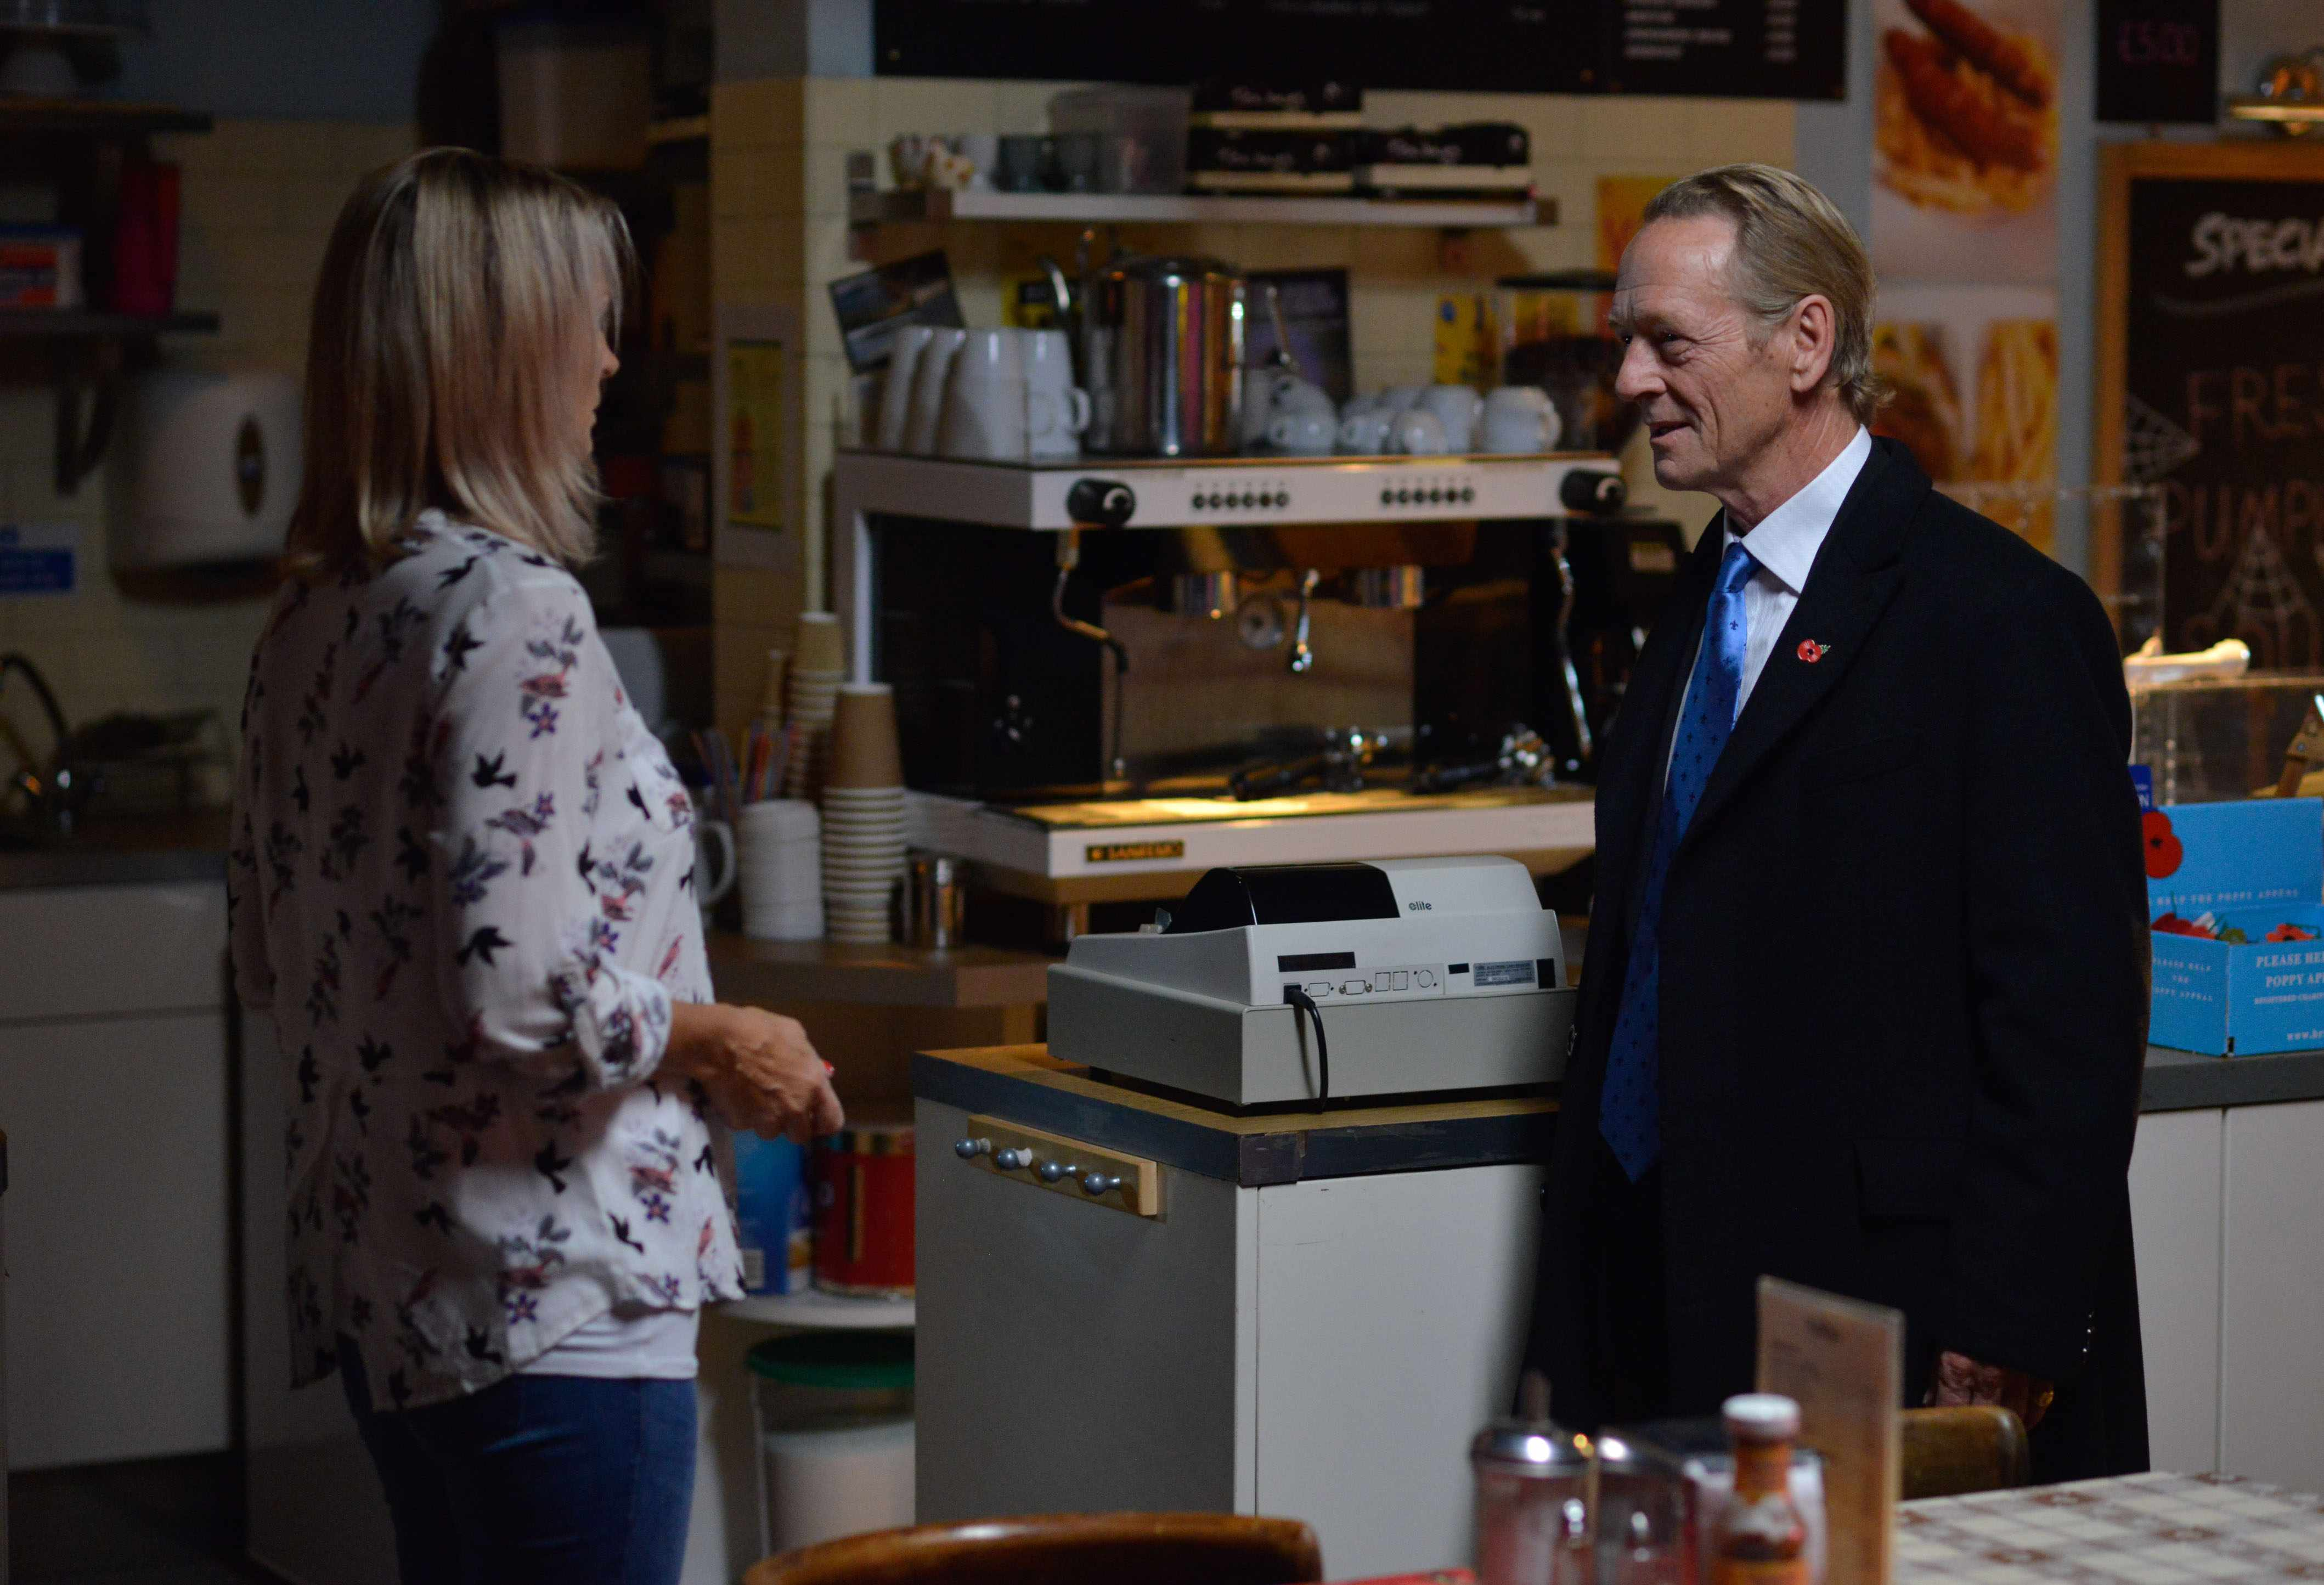 WARNING: Embargoed for publication until 00:00:01 on 31/10/2017 - Programme Name: EastEnders - October-December 2017 - TX: 06/11/2017 - Episode: EastEnders - October-December 2017 - 5593 (No. 5593) - Picture Shows: *STRICTLY NOT FOR PUBLICATION UNTIL 00:01HRS TUESDAY 31st OCTOBER 2017*  Kathy tells Willmott-Brown to get out but he says he wants to talk Kathy Beale (GILLIAN TAYLFORTH), James Willmott-Brown (WILLIAM BOYDE) - (C) BBC - Photographer: Kieron McCarron